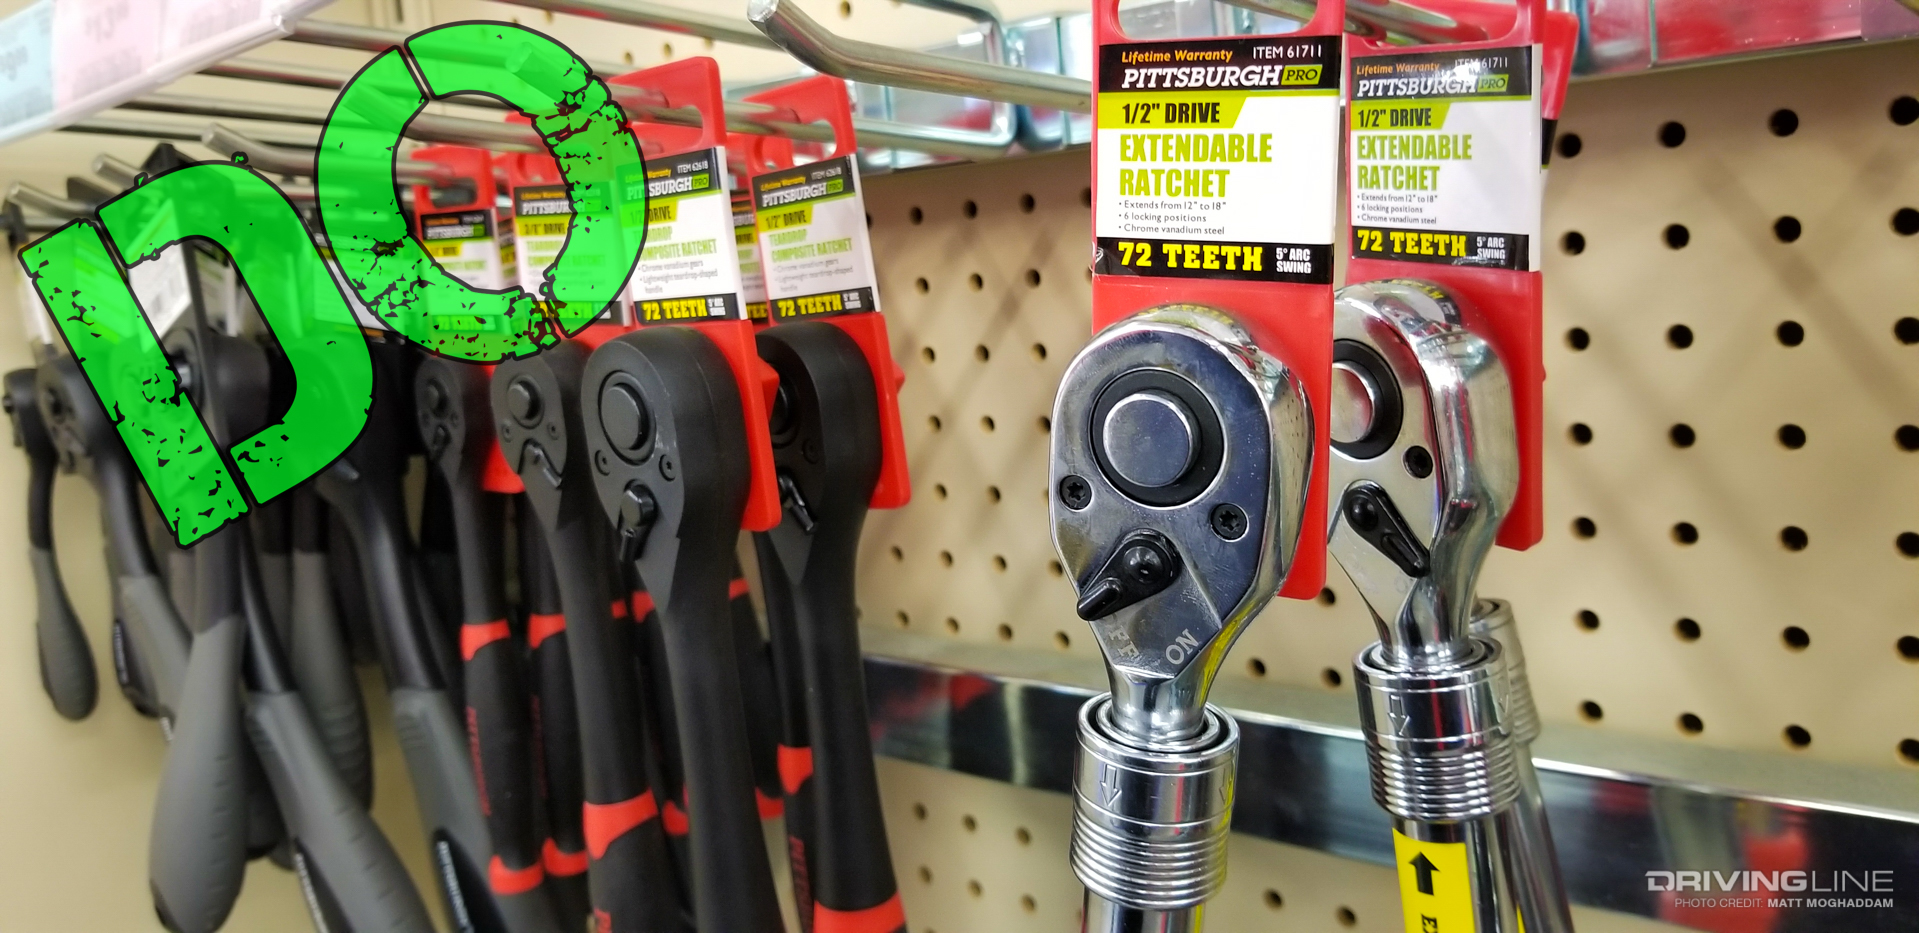 Best Harbor Freight Tools 2020 27 Do's and Don'ts of Harbor Freight Tools | DrivingLine